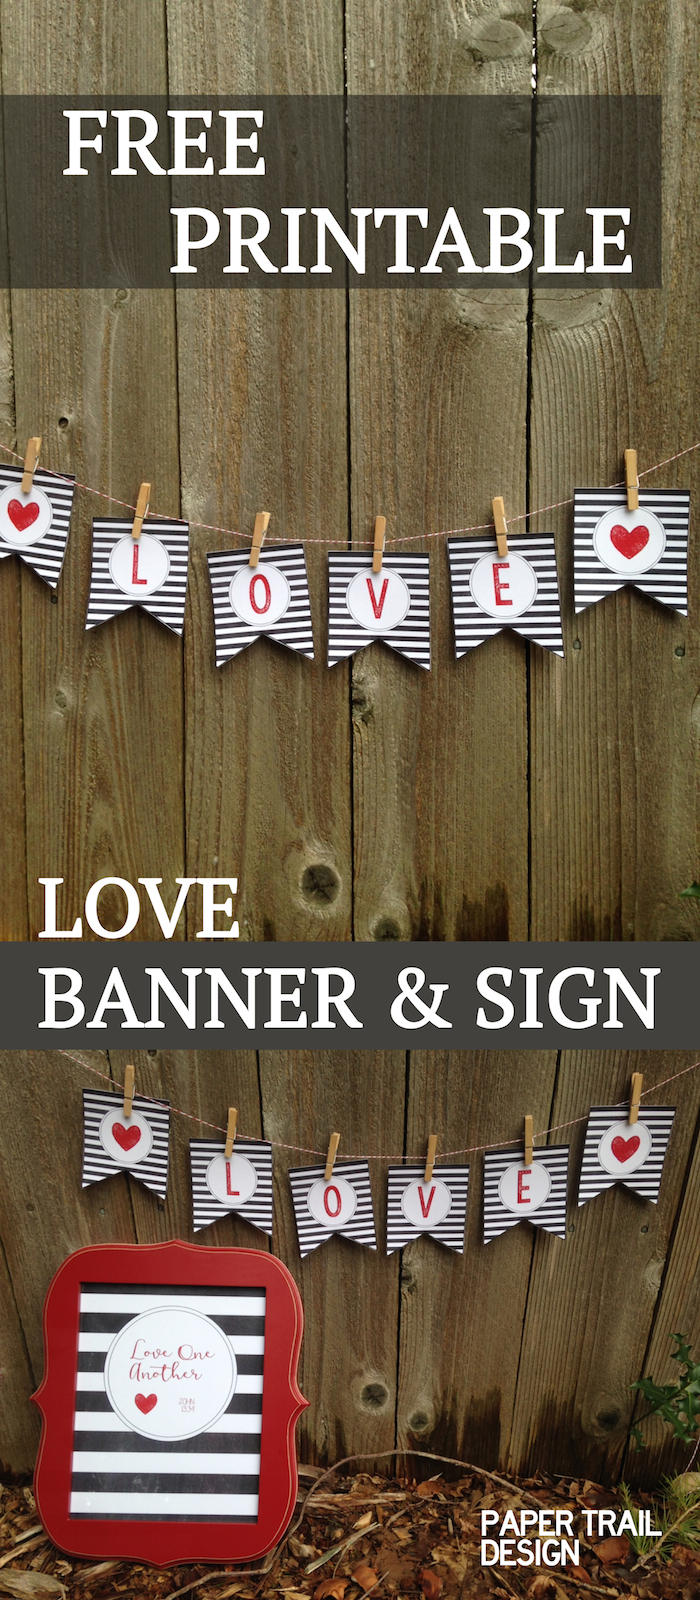 Free Printable Love Banner Matching Print Paper Trail Design